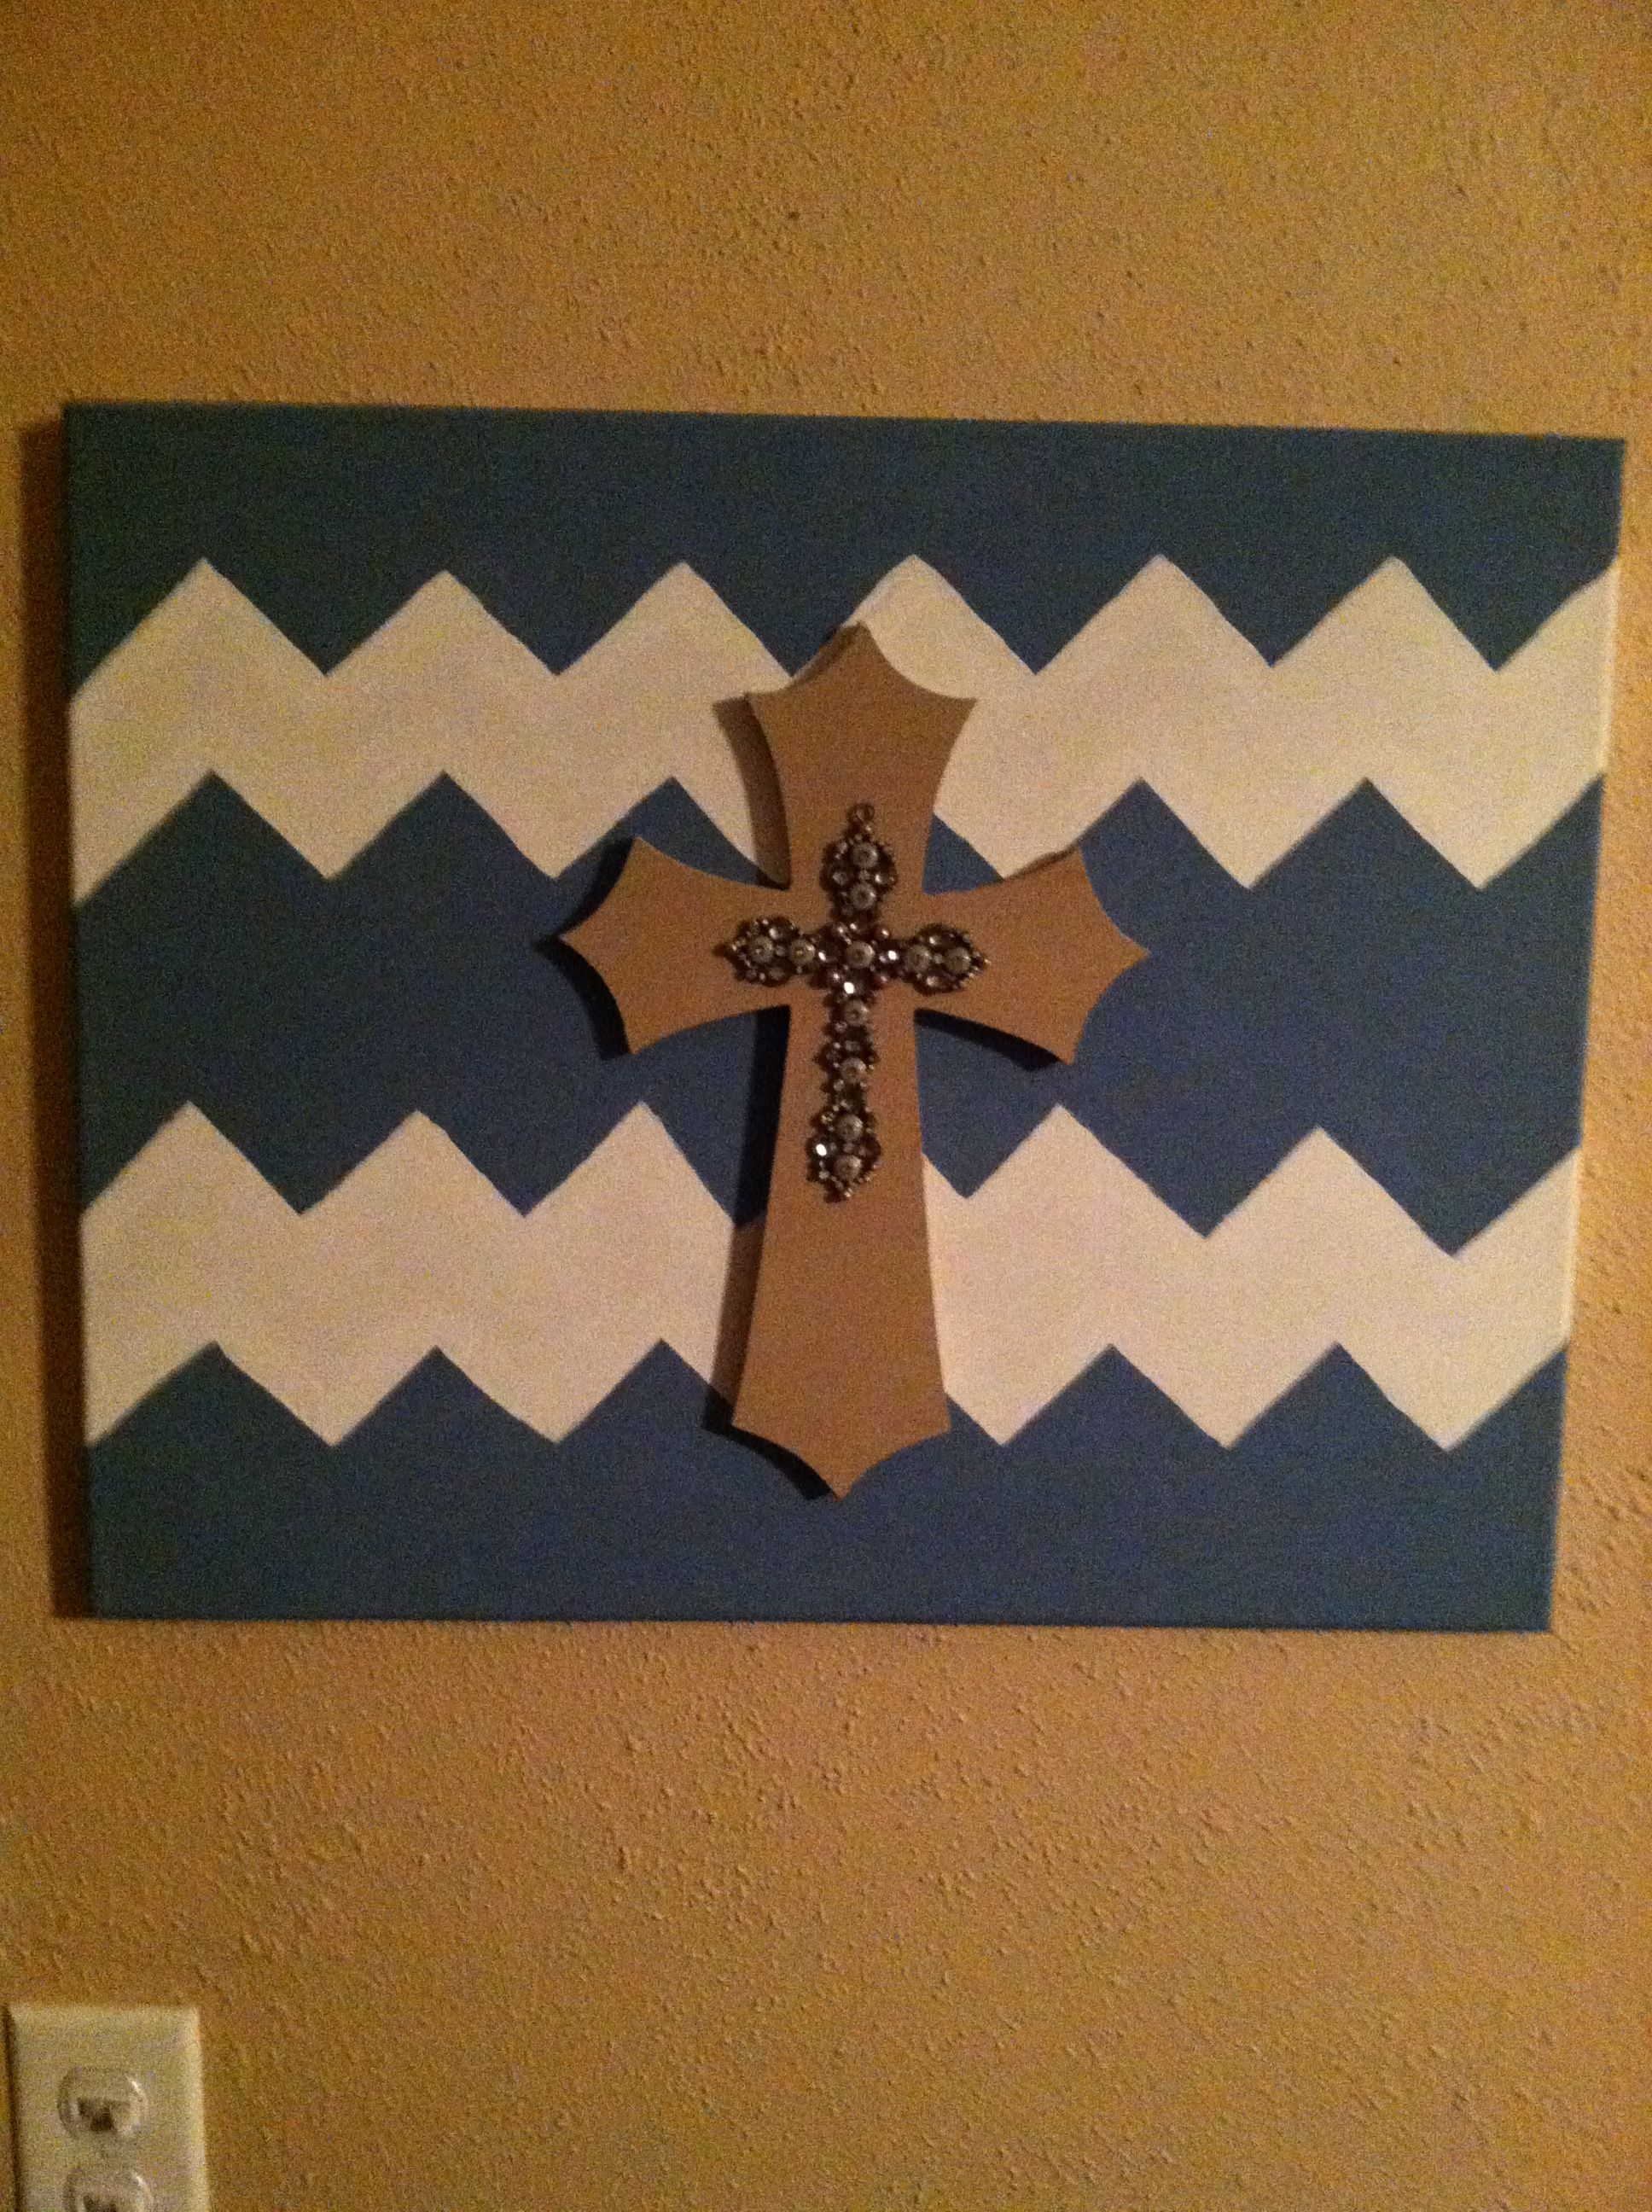 Chevron painting with cross